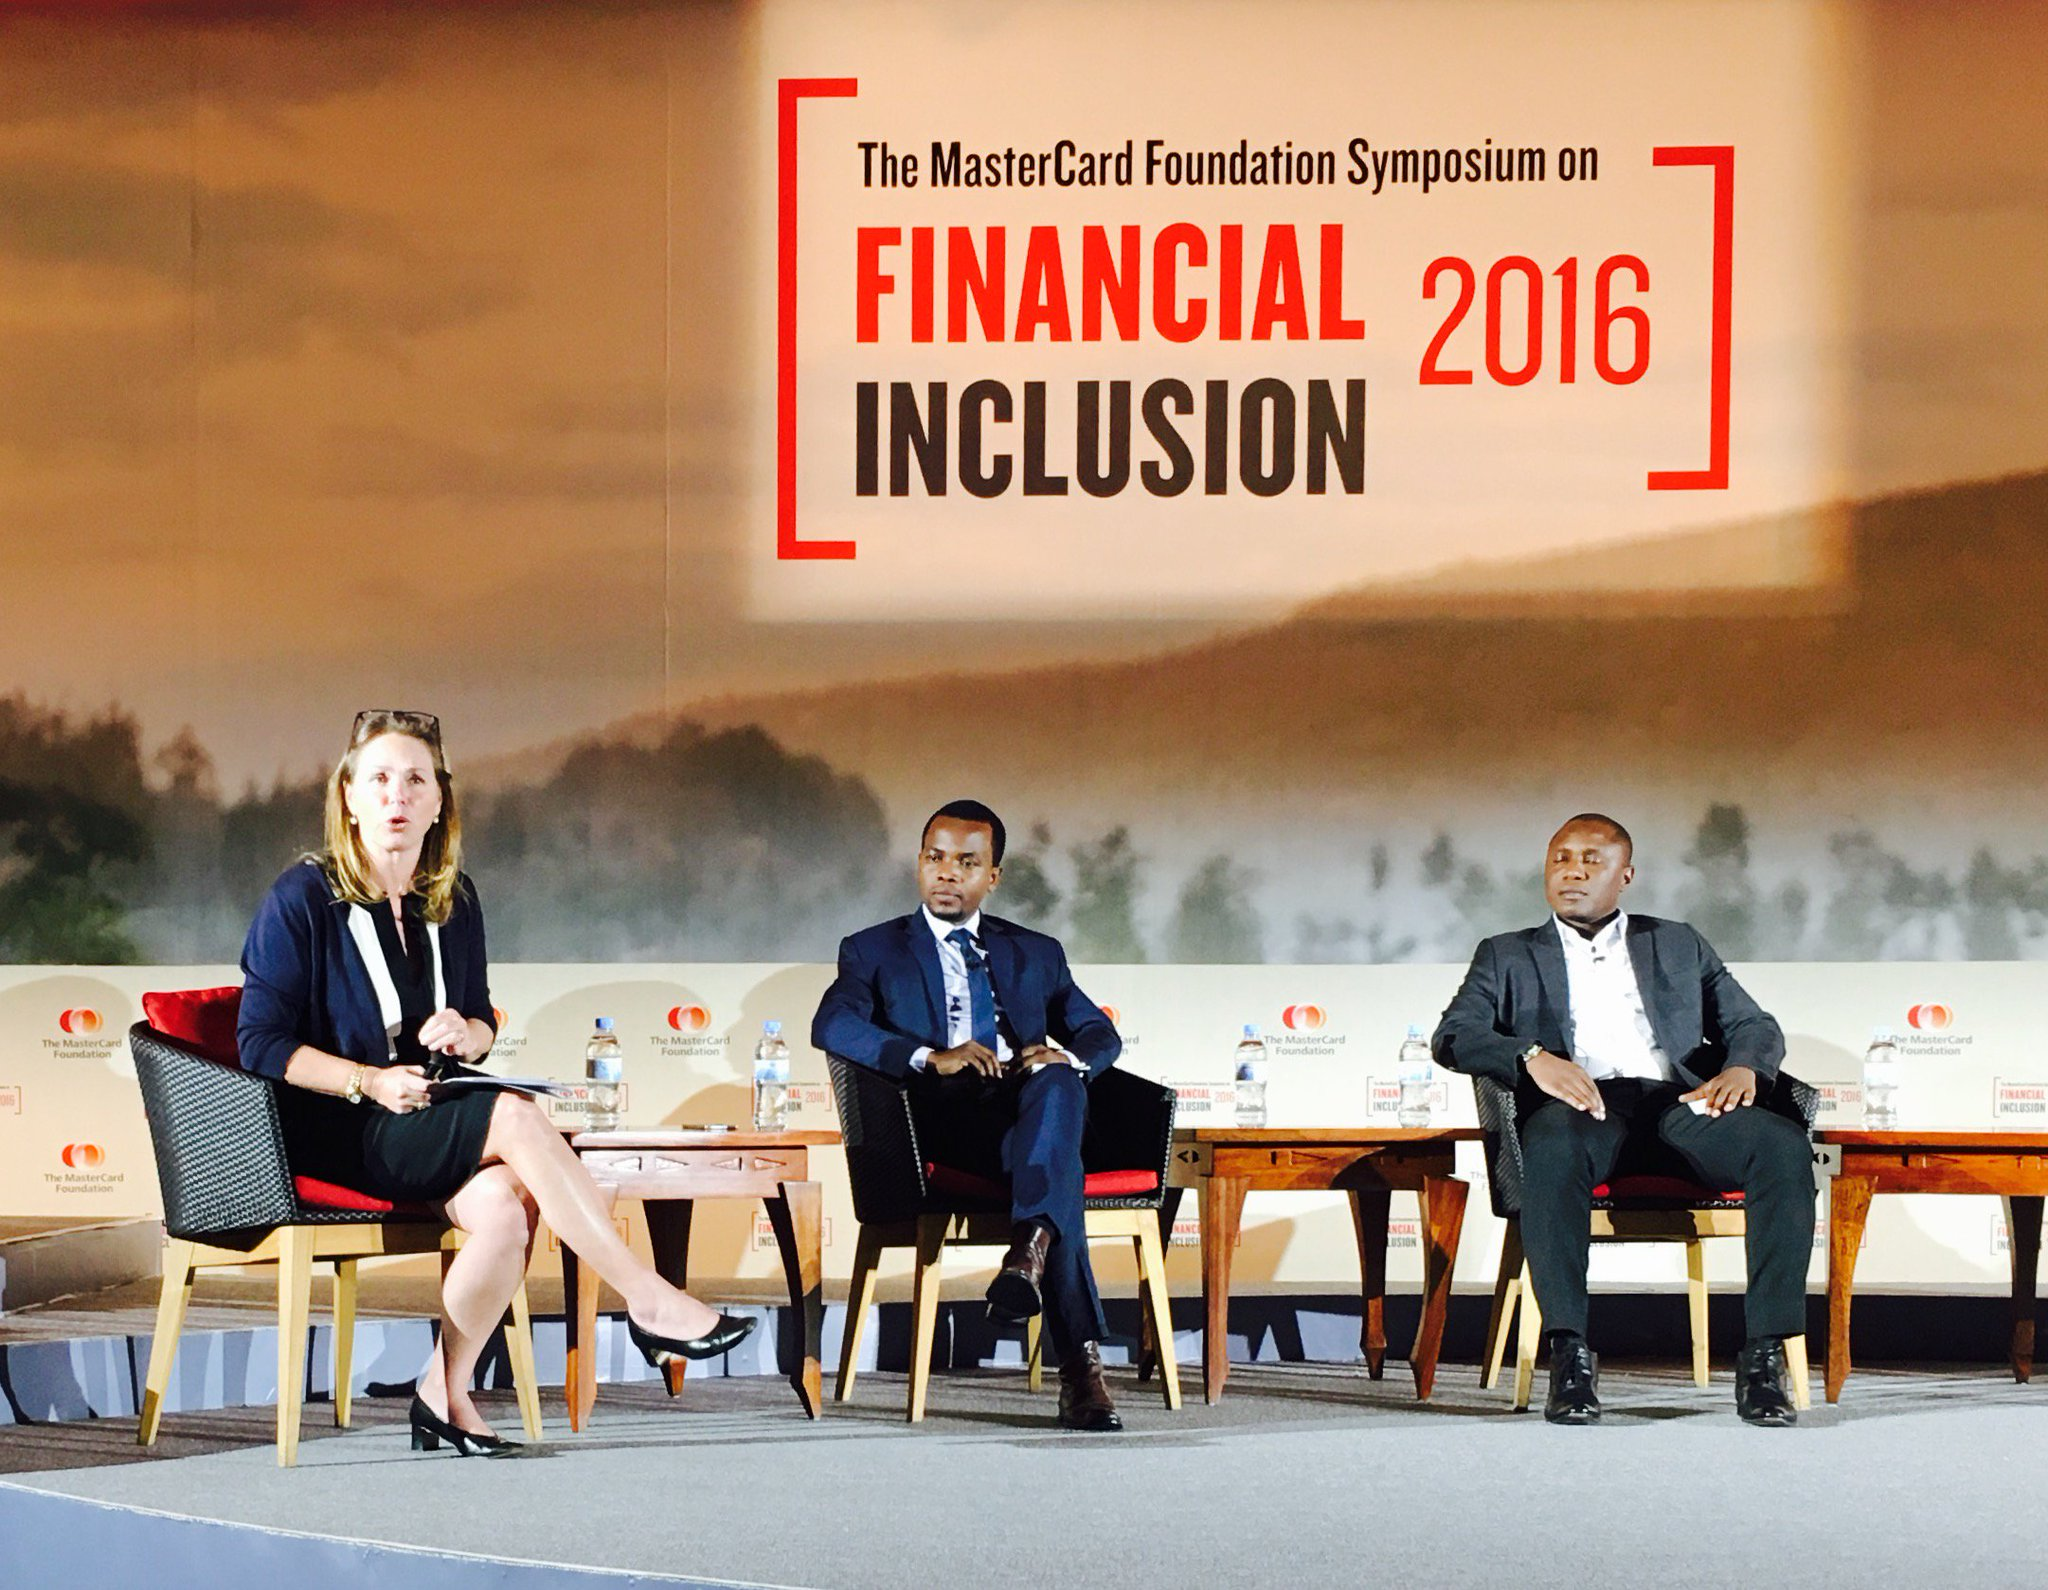 "#SoFI2016 panel explores how to use partnerships to shift towards #clientcentricity.@MercyCorps asks: ""How does design meet customer needs?"" https://t.co/isL8jnyTQP"